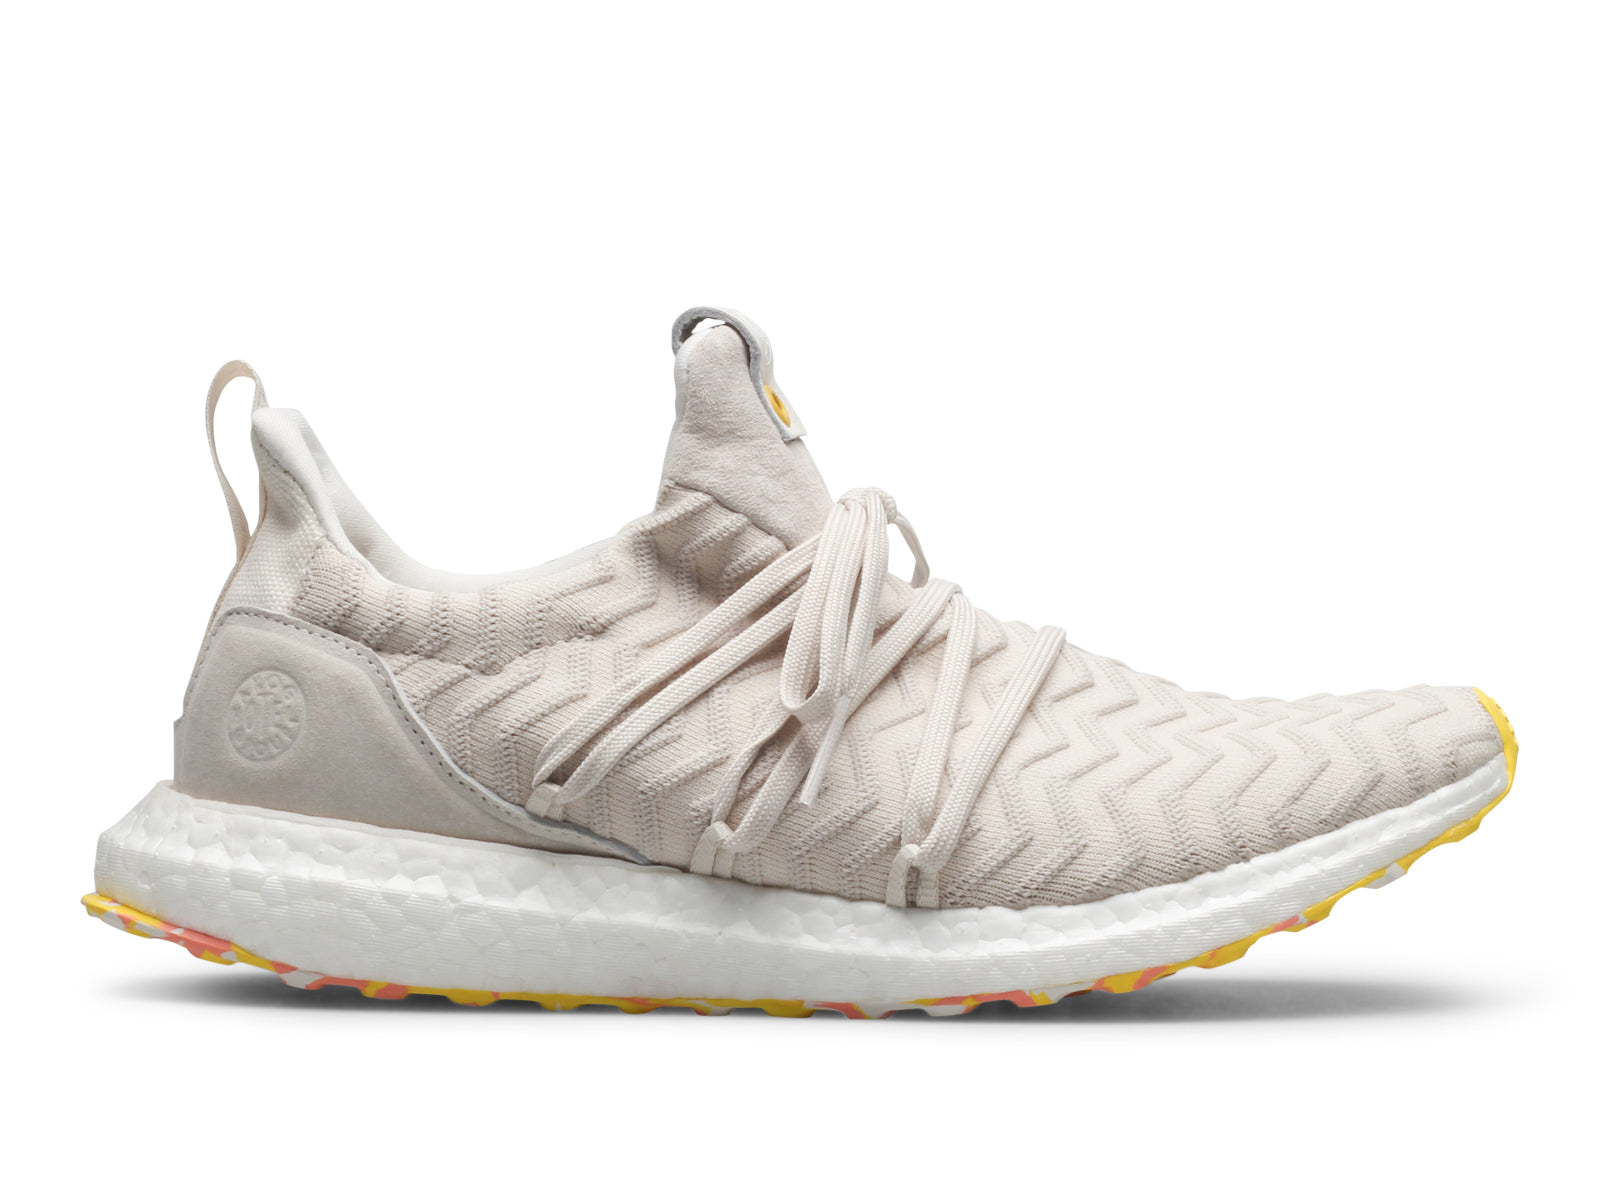 e890d39745a4a The Adidas x A.K.O.G Ultra Boost features a White Primeknit upper that  boasts a raised wave effect with an uncaged design. A wrap-around lacing  system ...